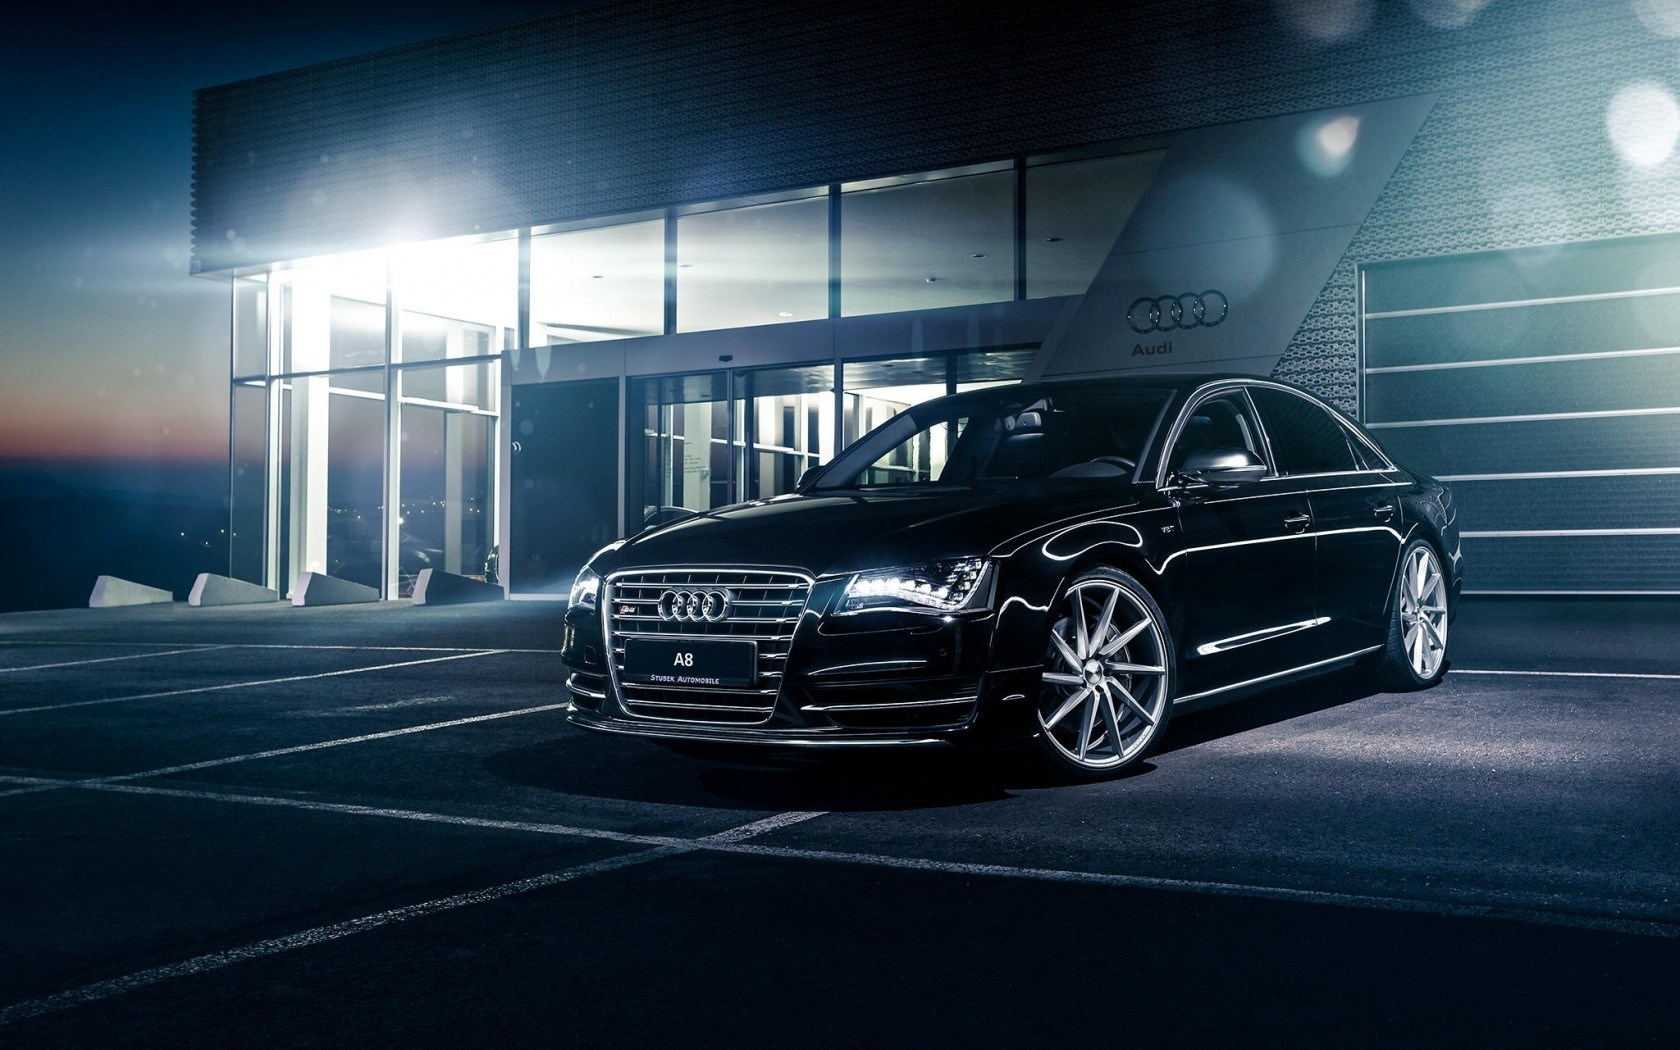 Audi S8 Wallpapers 1080p J1T6QZK   4USkY 1680x1050